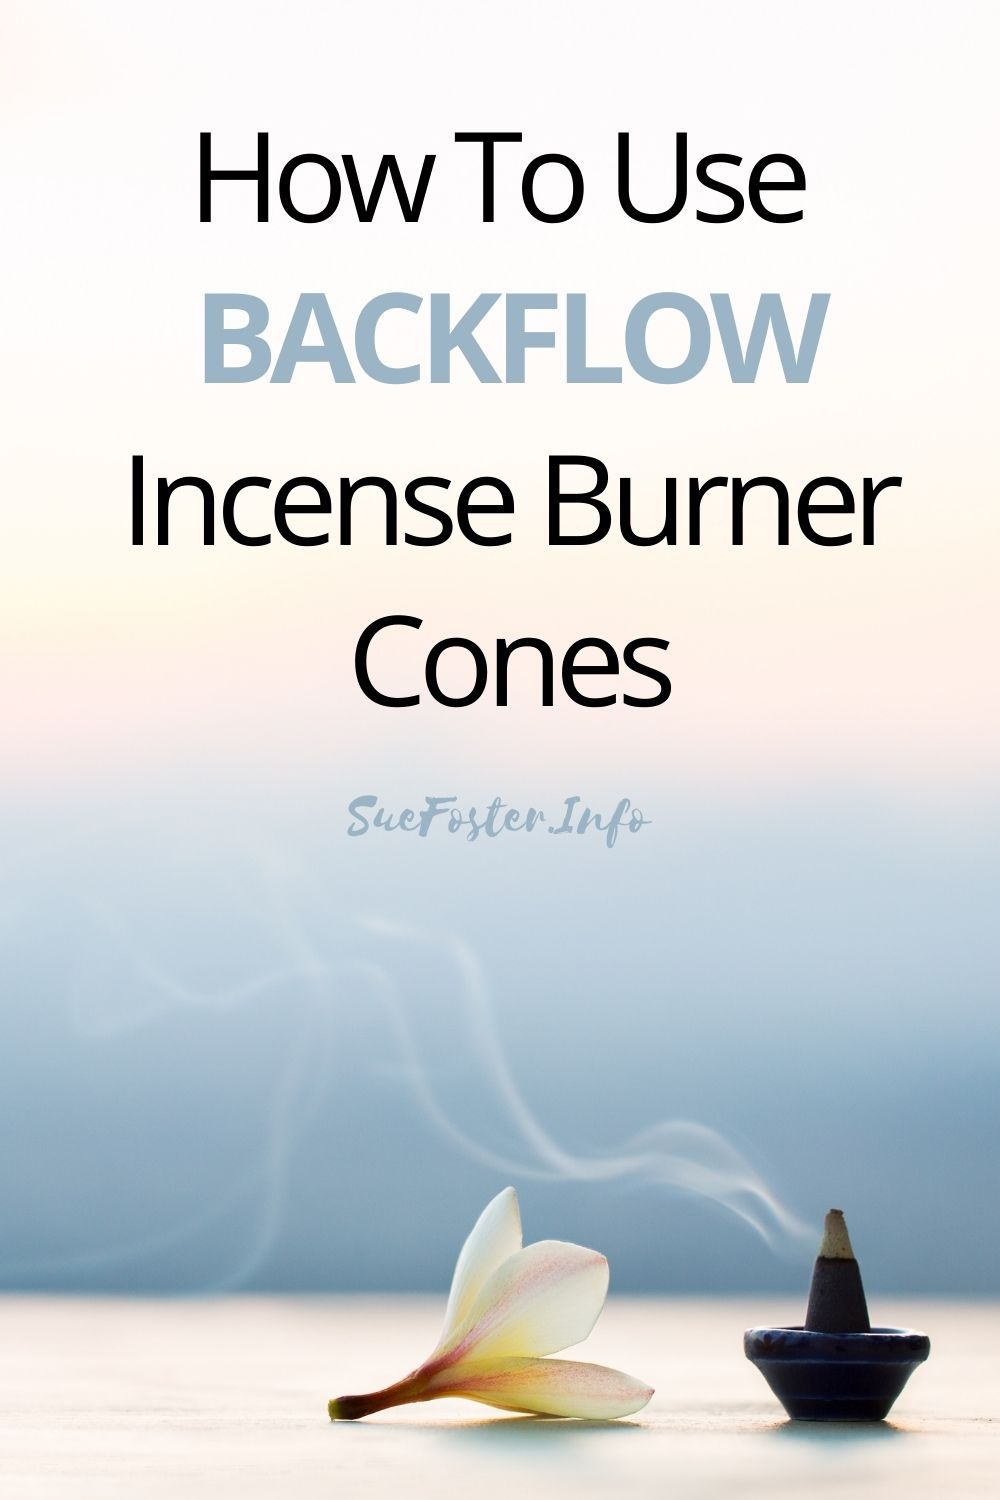 How to use backflow incense burner cones